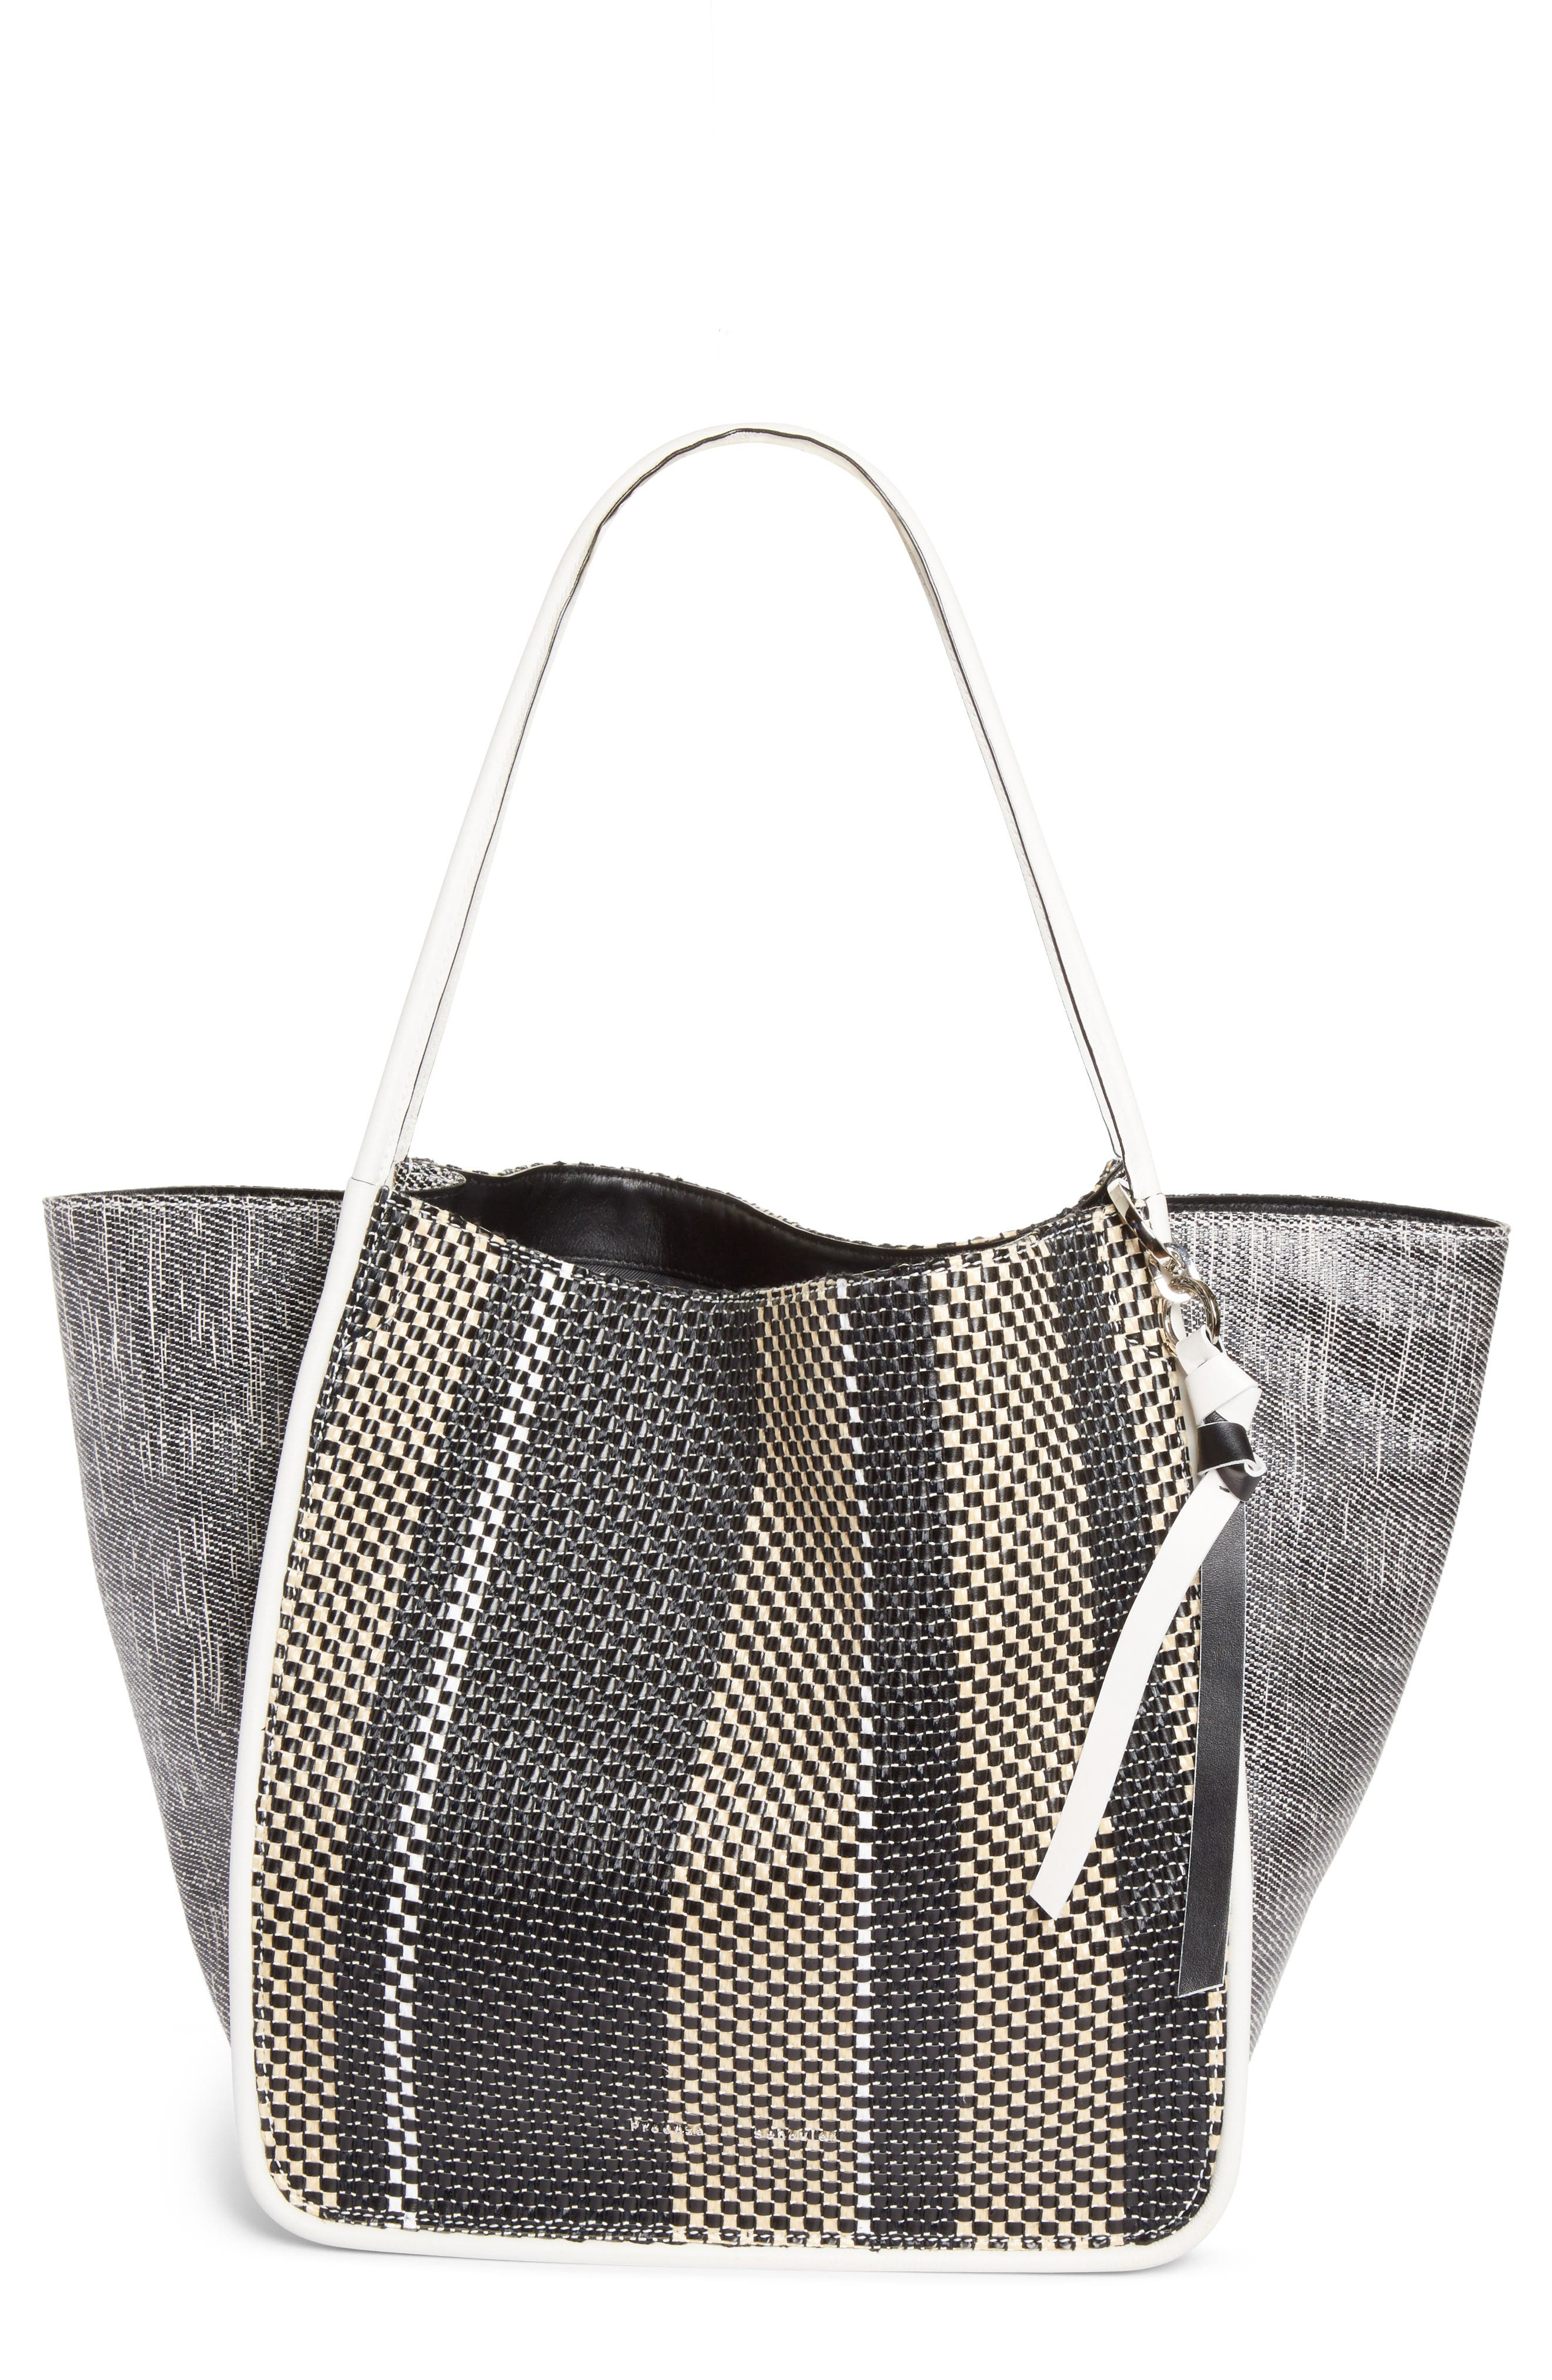 Proenza Schouler Mixed Weave Extra Large Tote